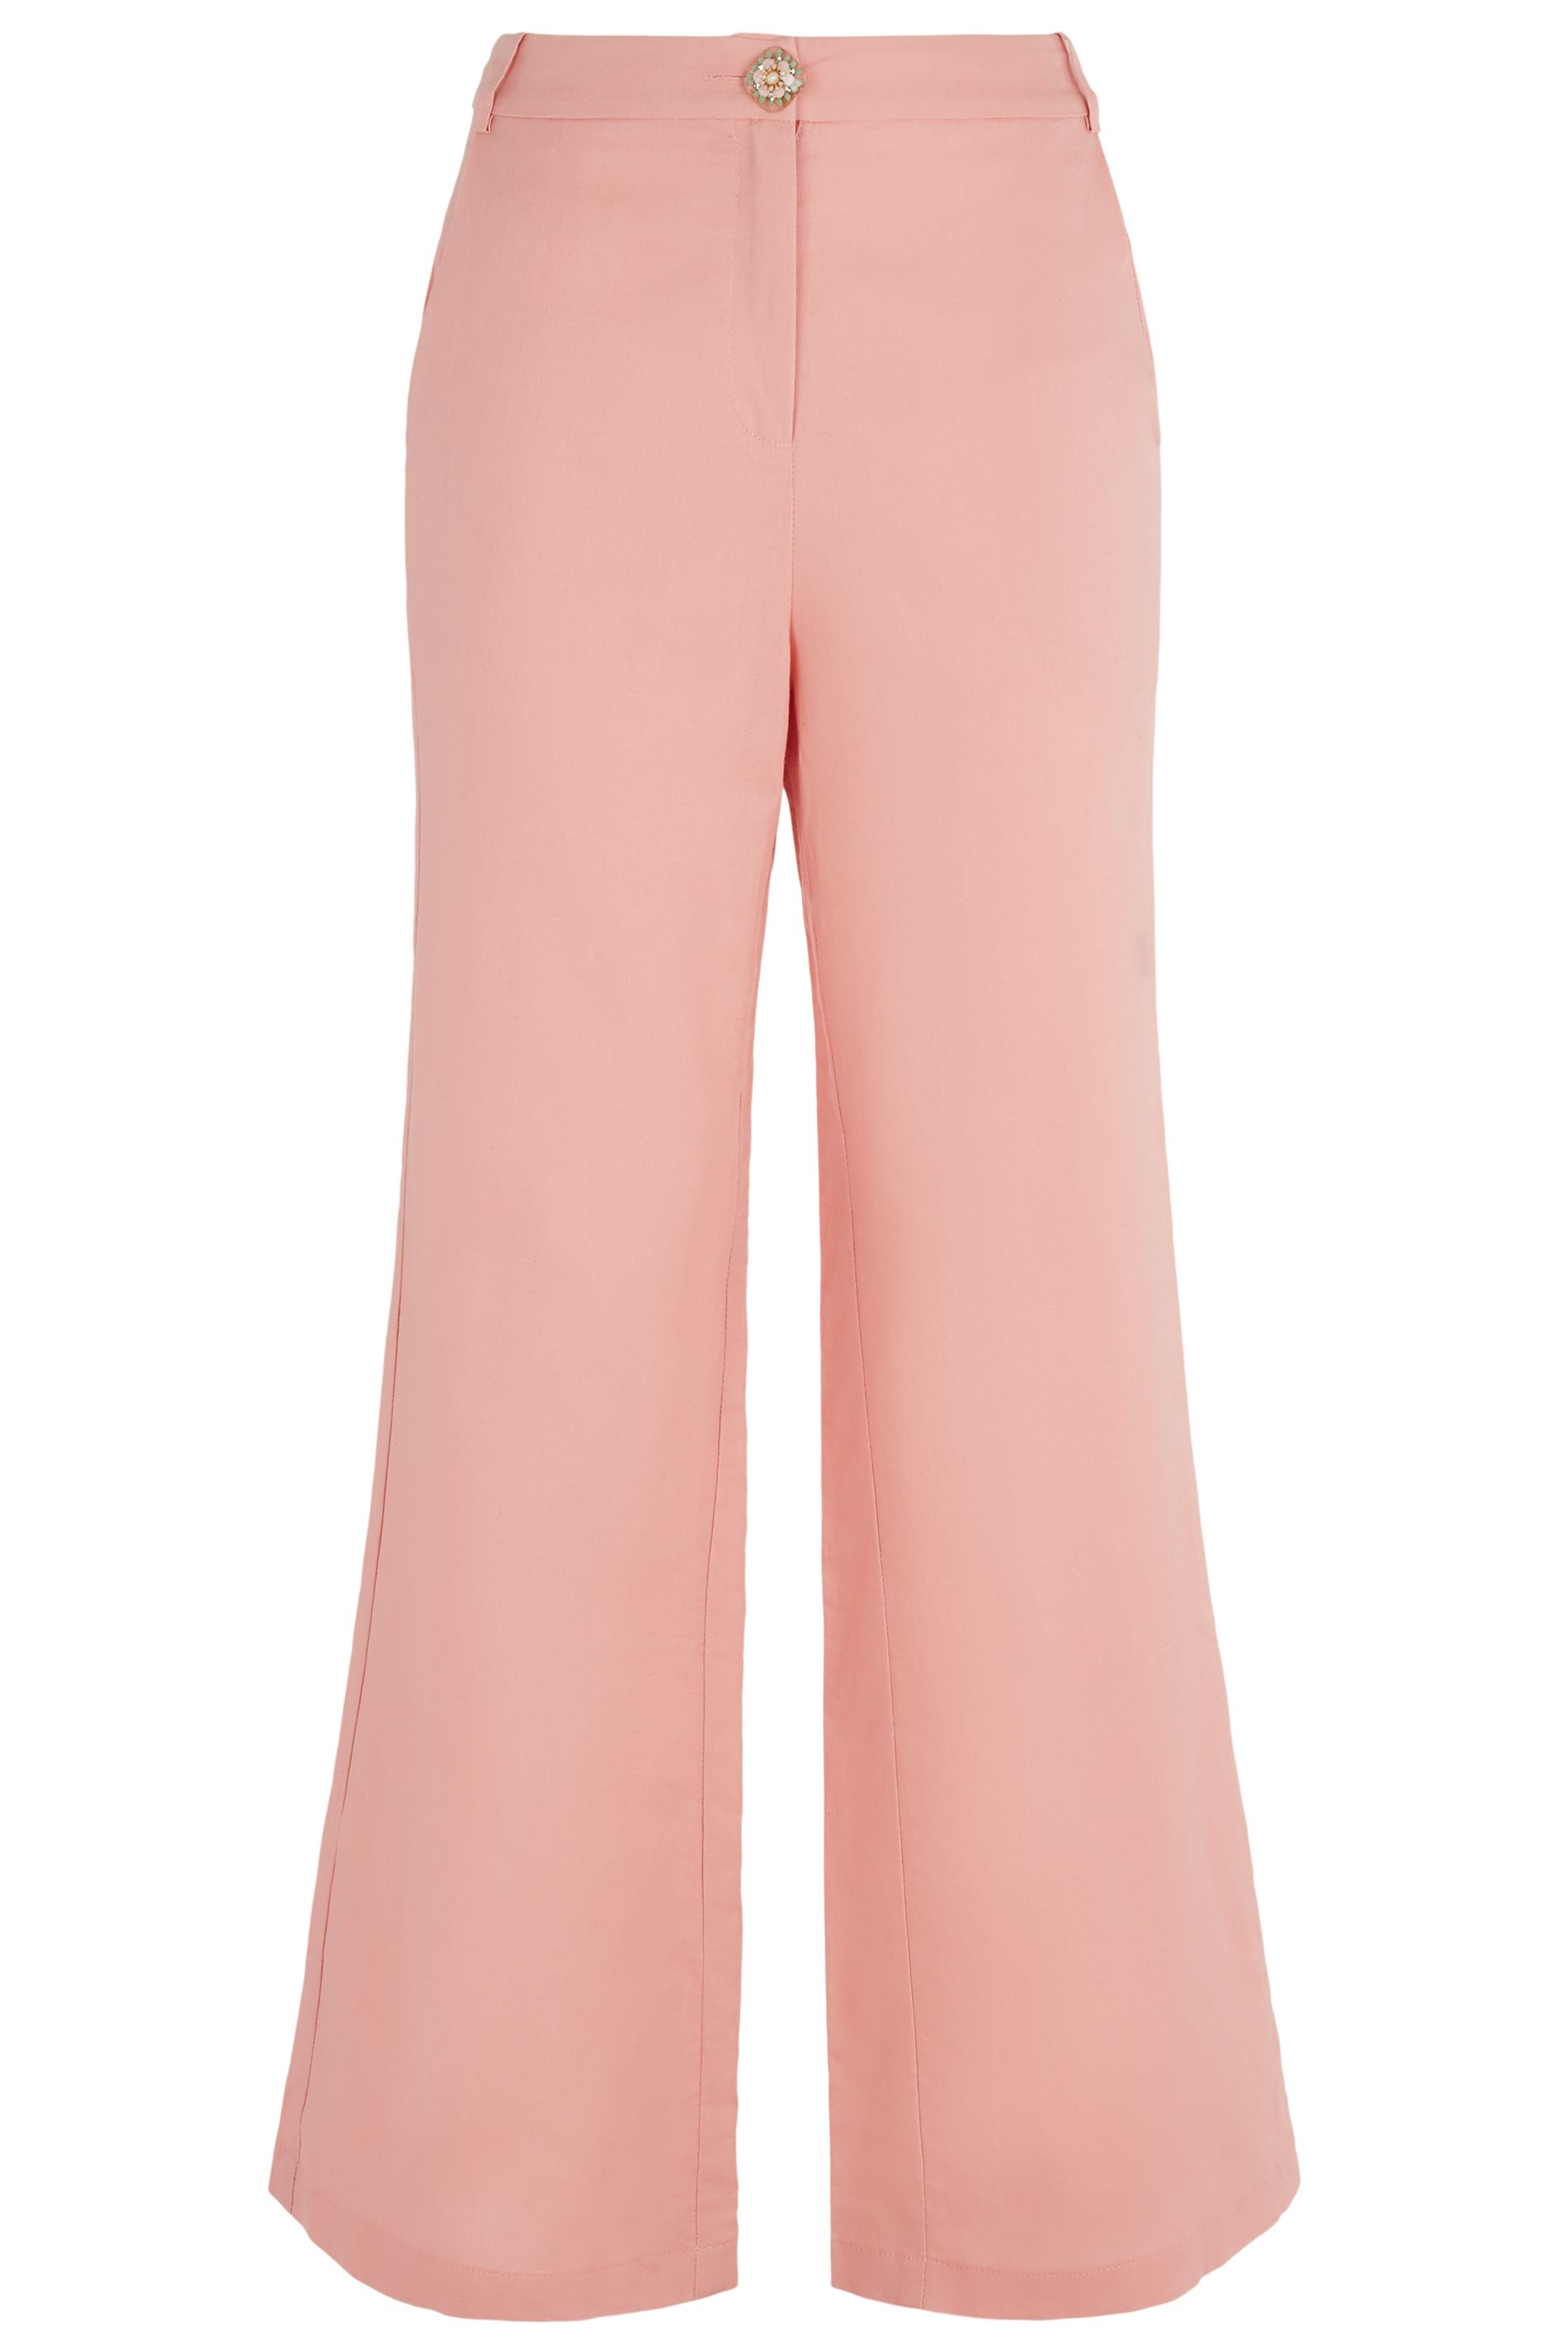 Button Up Flared Trousers in Salmon Pink